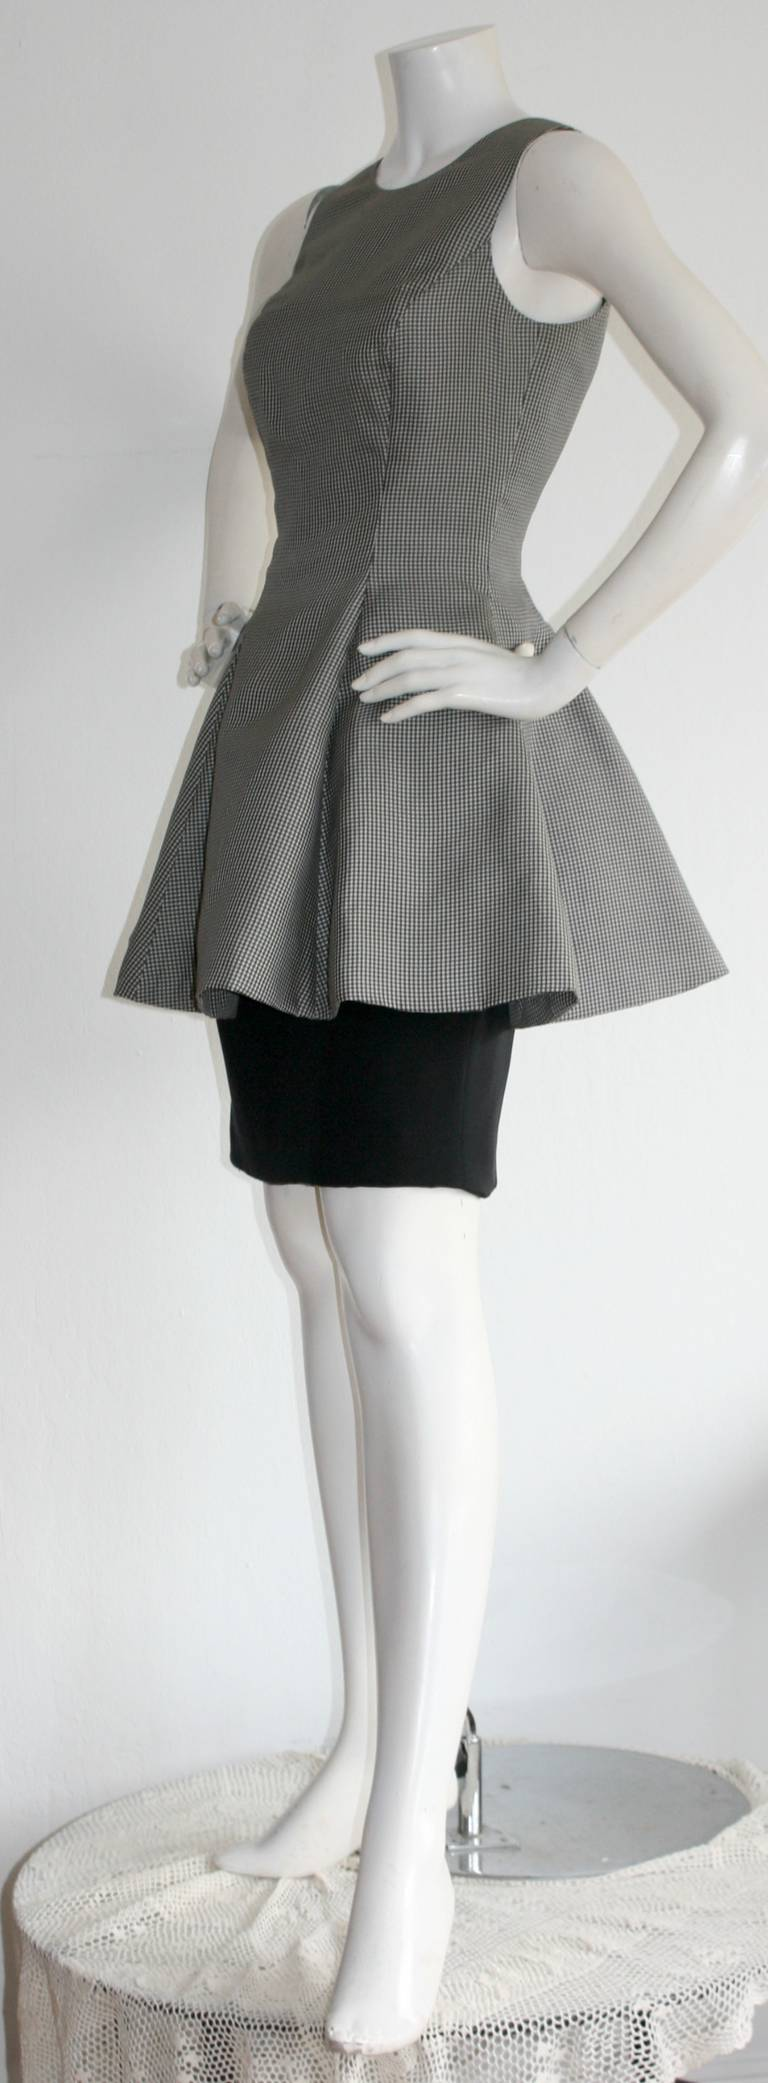 Women's Vintage James Purcell Houndstooth Dress Avant Garde Space Age For Sale